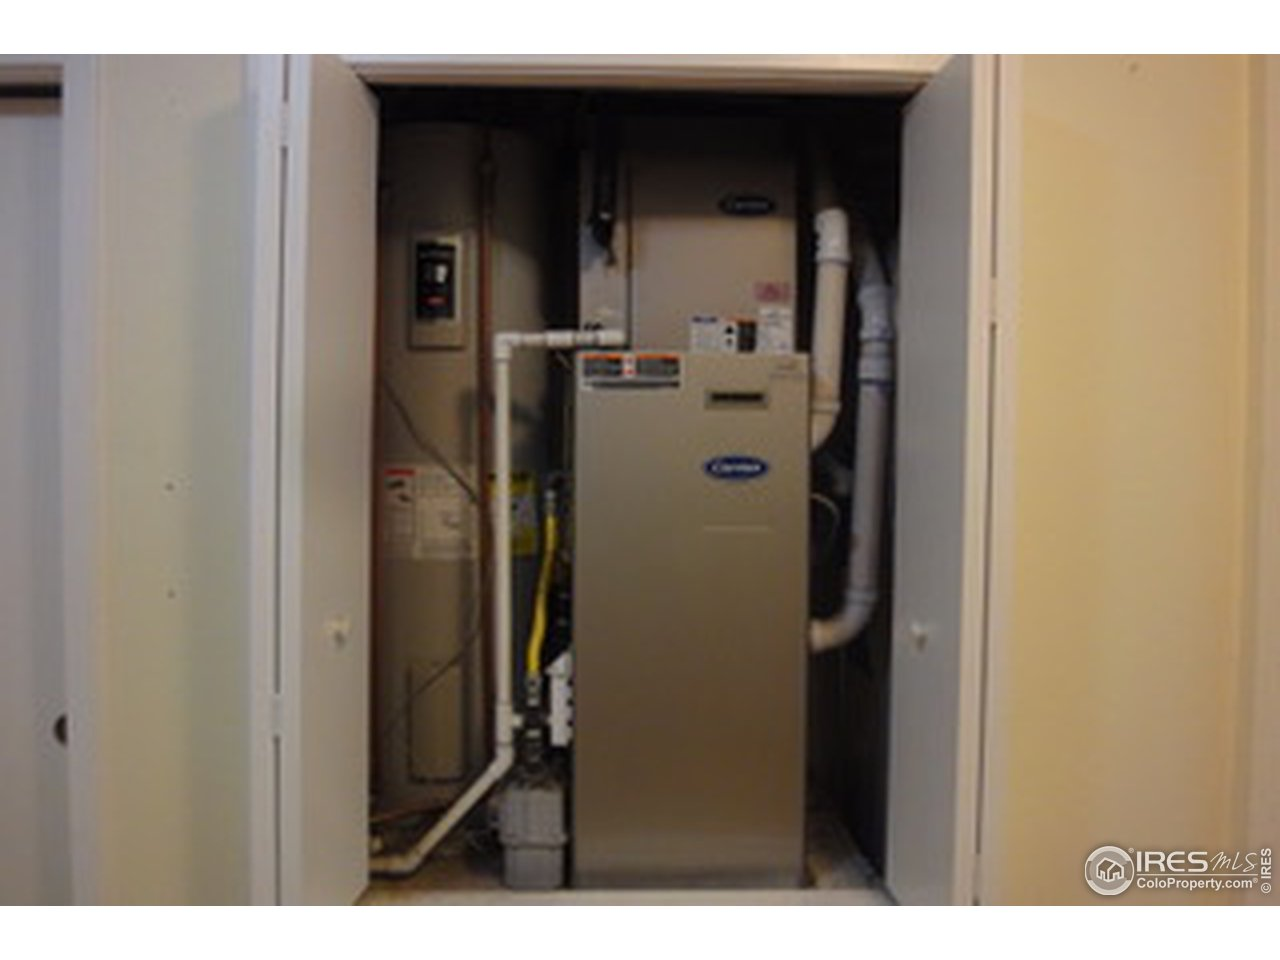 Gas forced air furnace